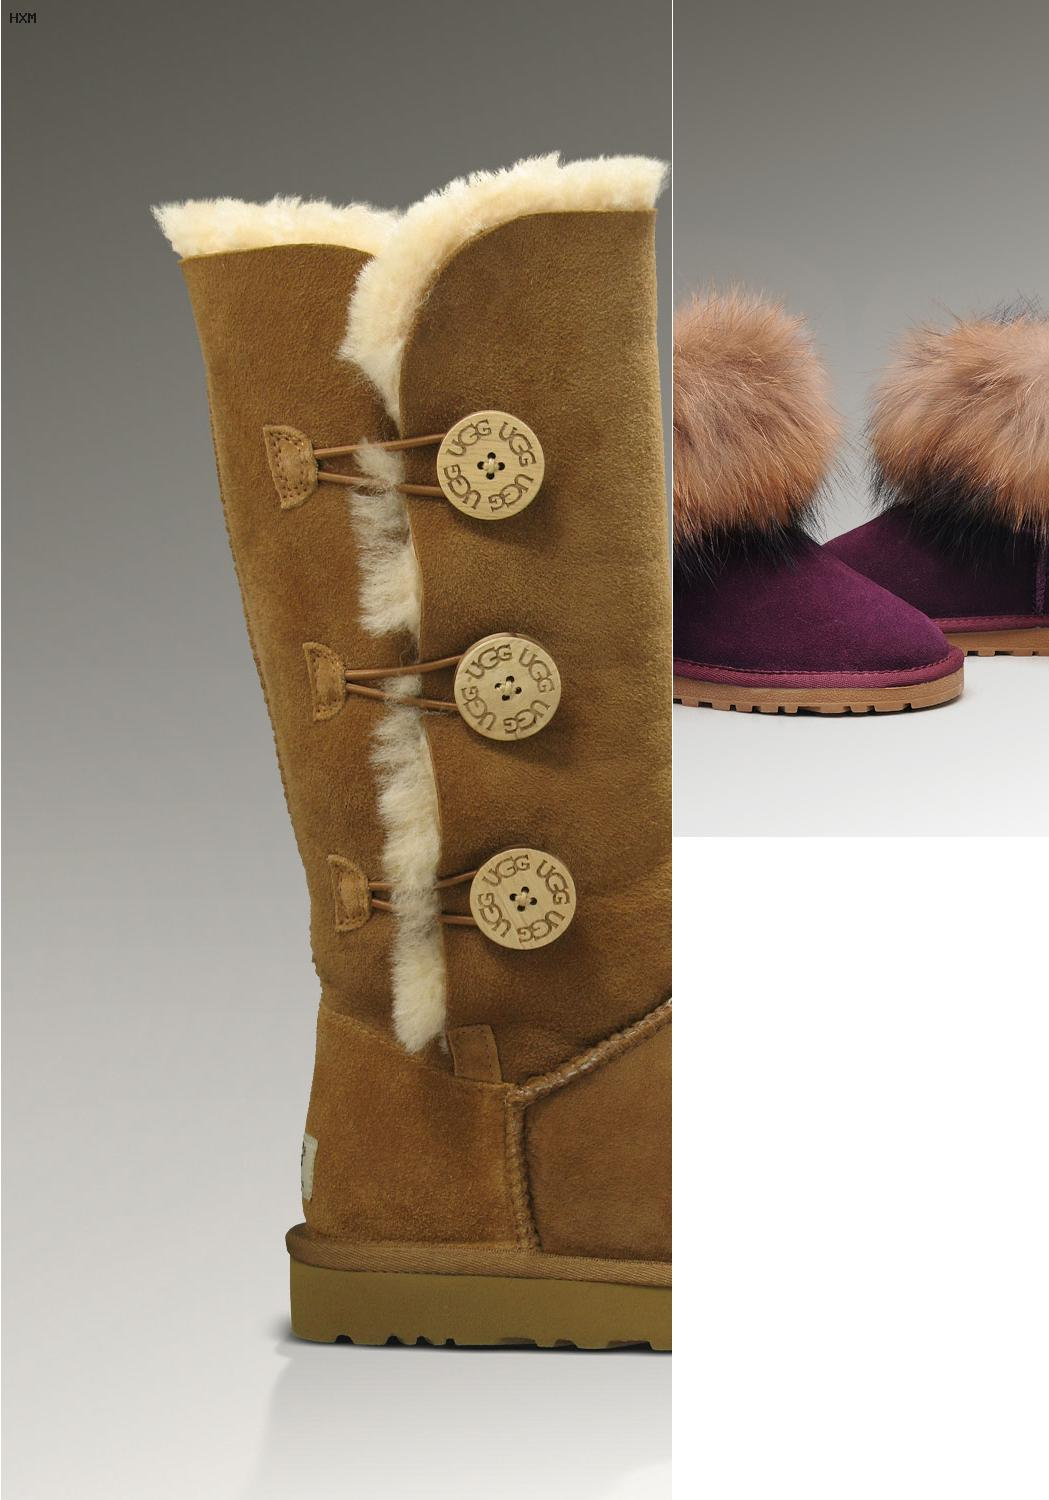 ugg boots mini bailey button kinder